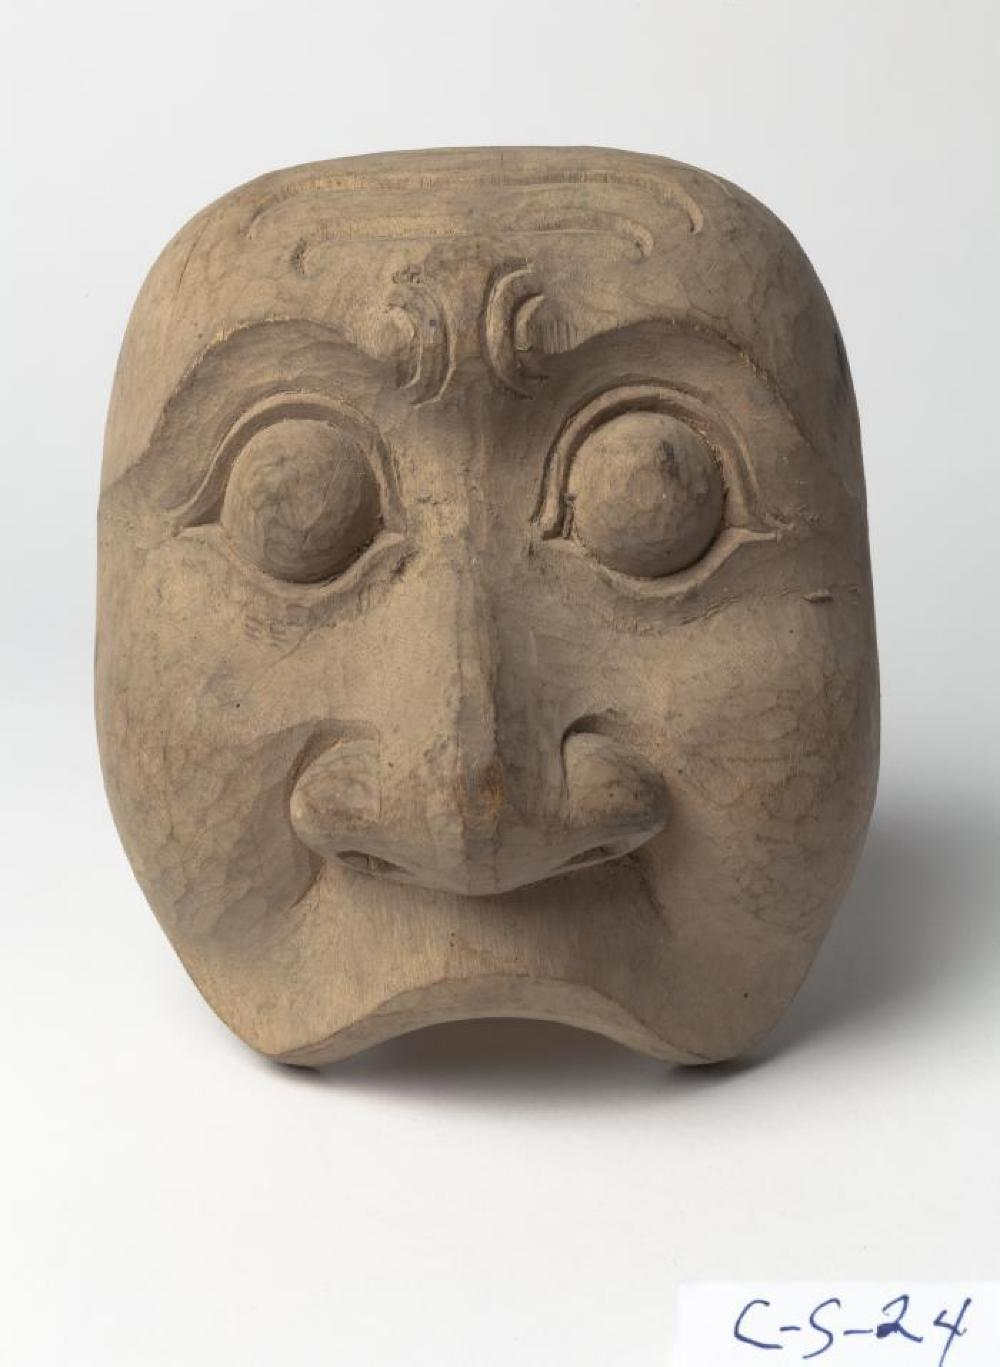 I Dewa Made Rai (Balinese); Topeng Penasar Mask; 20th century; Wood; 6 1/2 x 3 x 6 in.; Collection of Isamu Noguchi. (Study Collection; Collectibles, C-S-24)